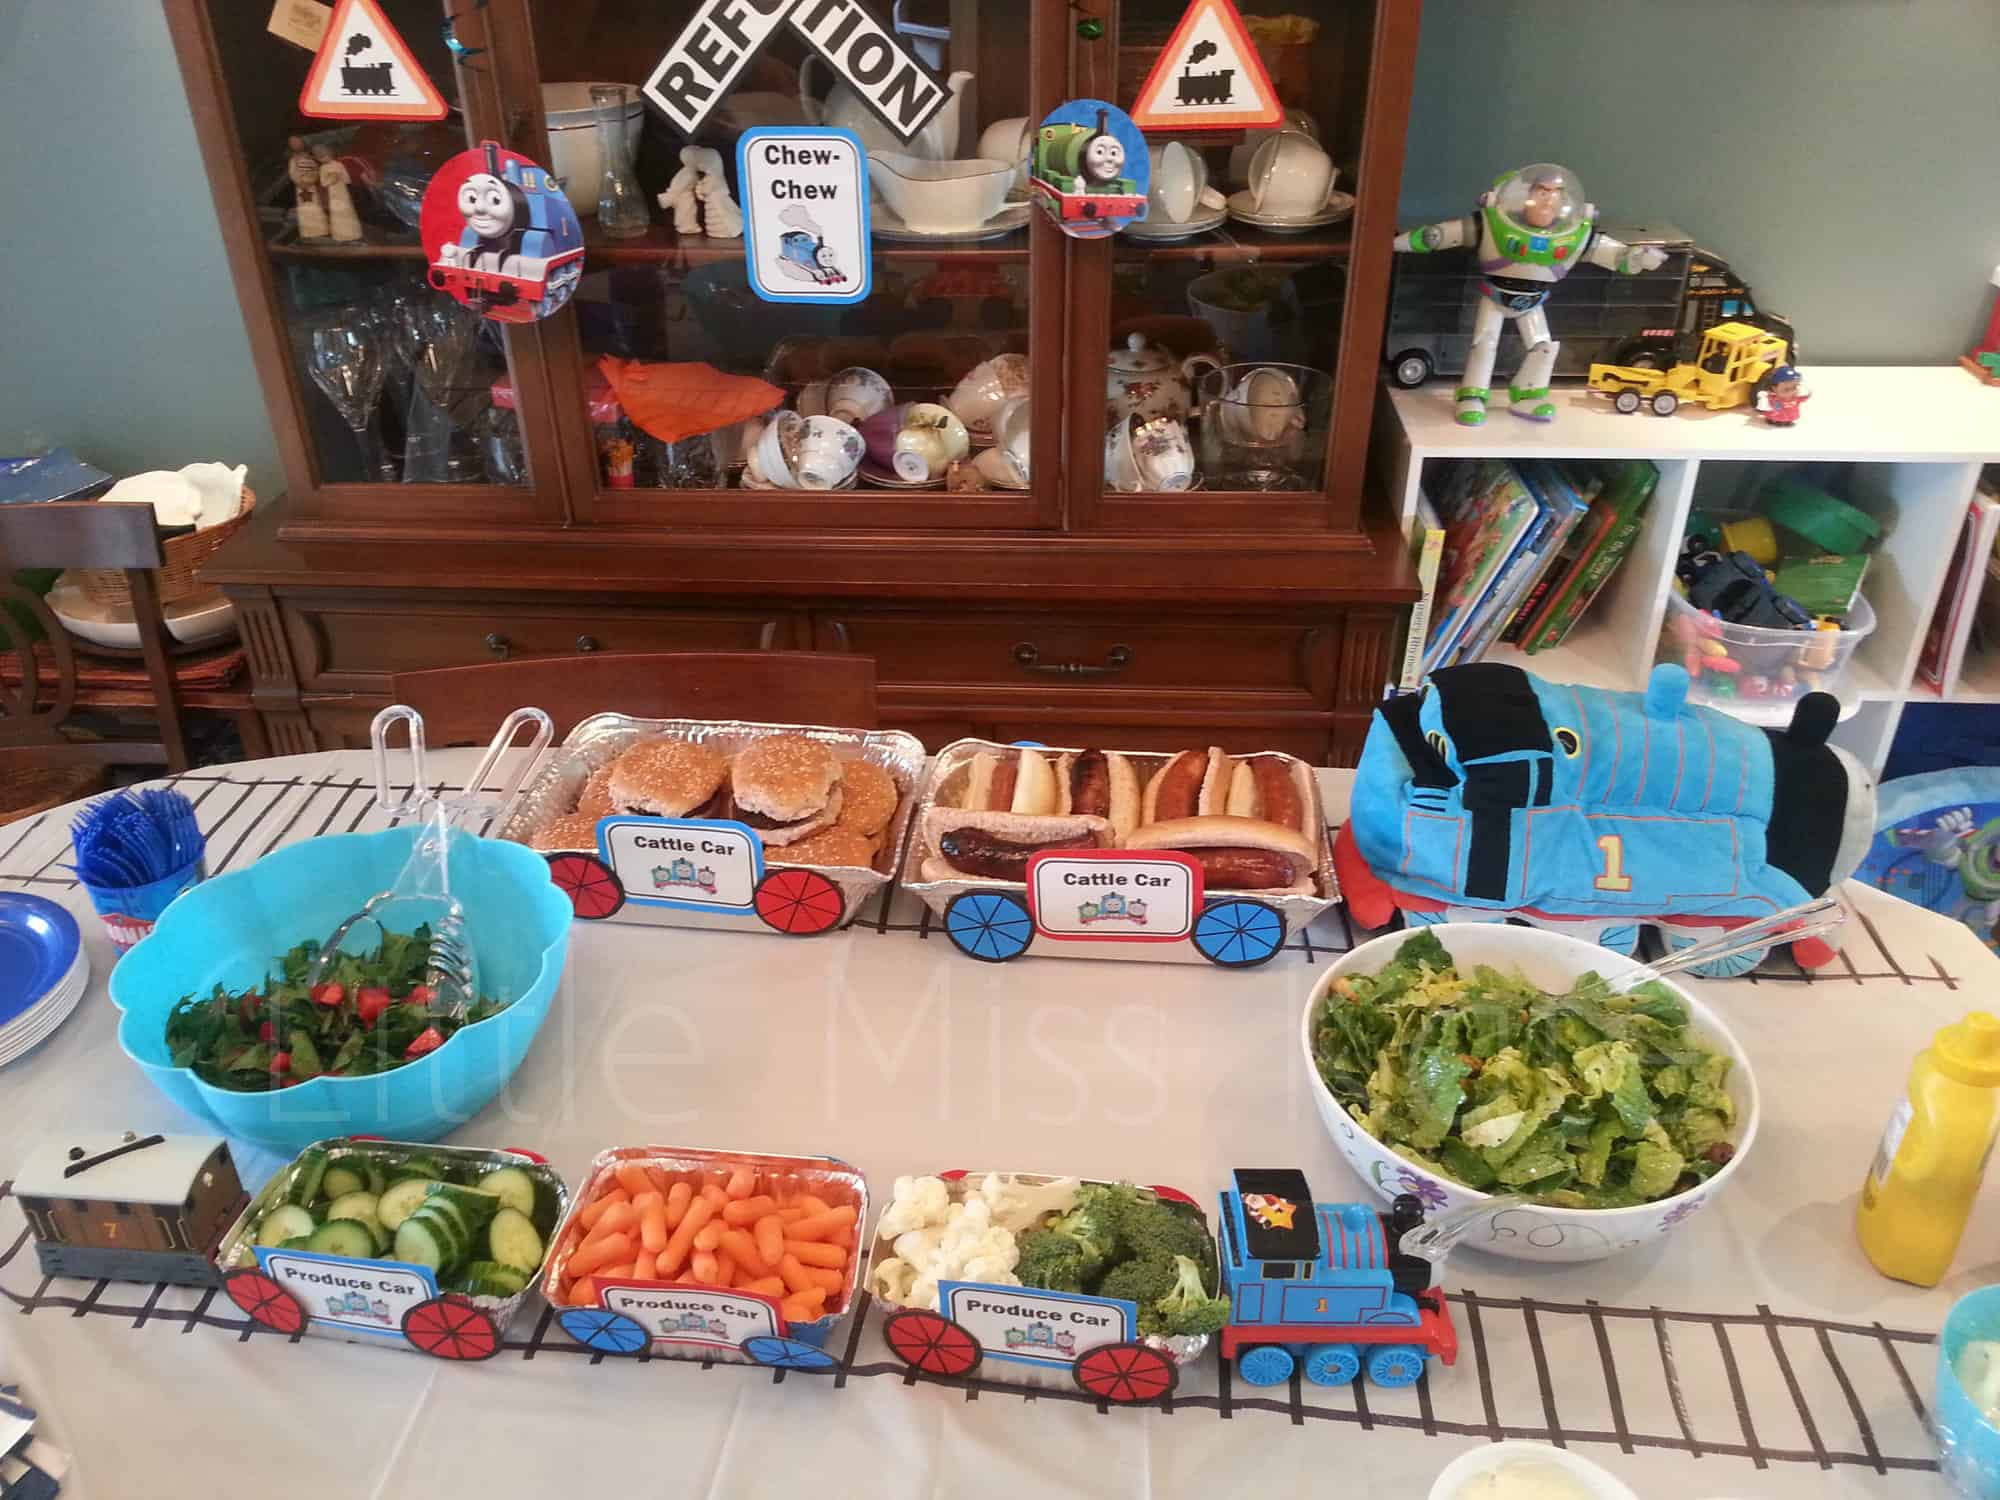 Thomas The Train Birthday Decorations  Kids Birthday Party Ideas Thomas the Train Party Ideas